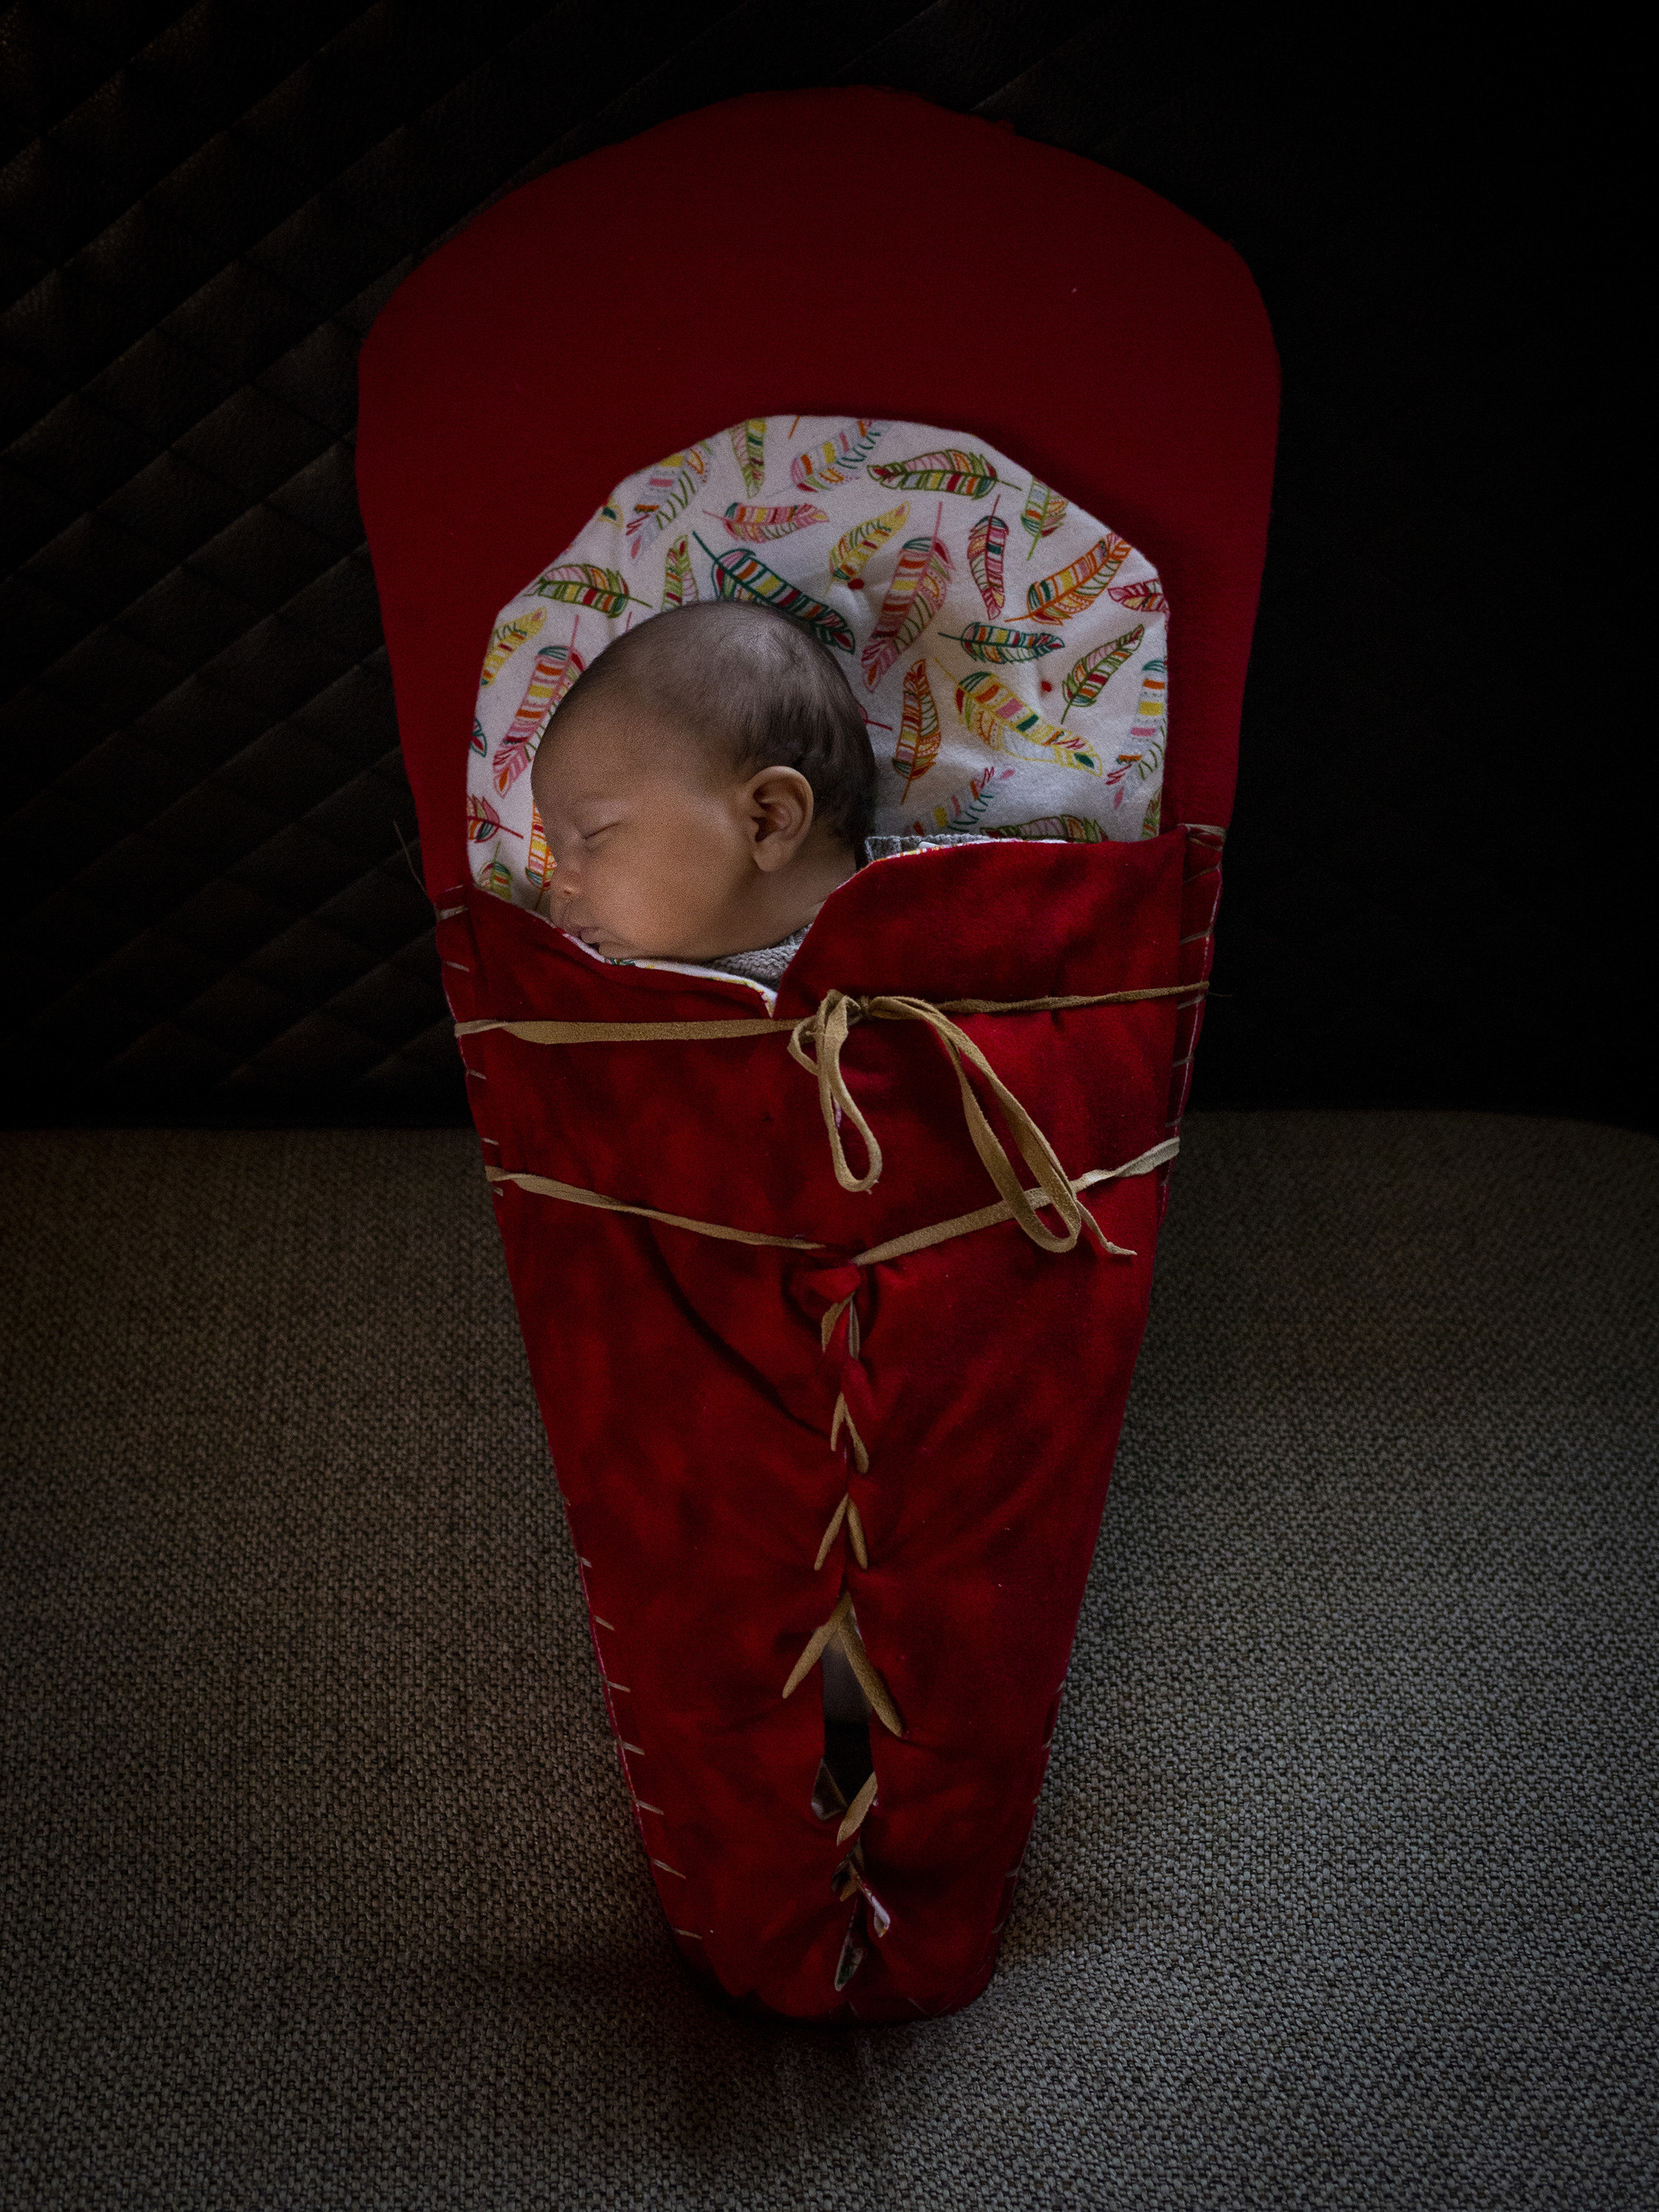 A baby sleeping wrapped in red.